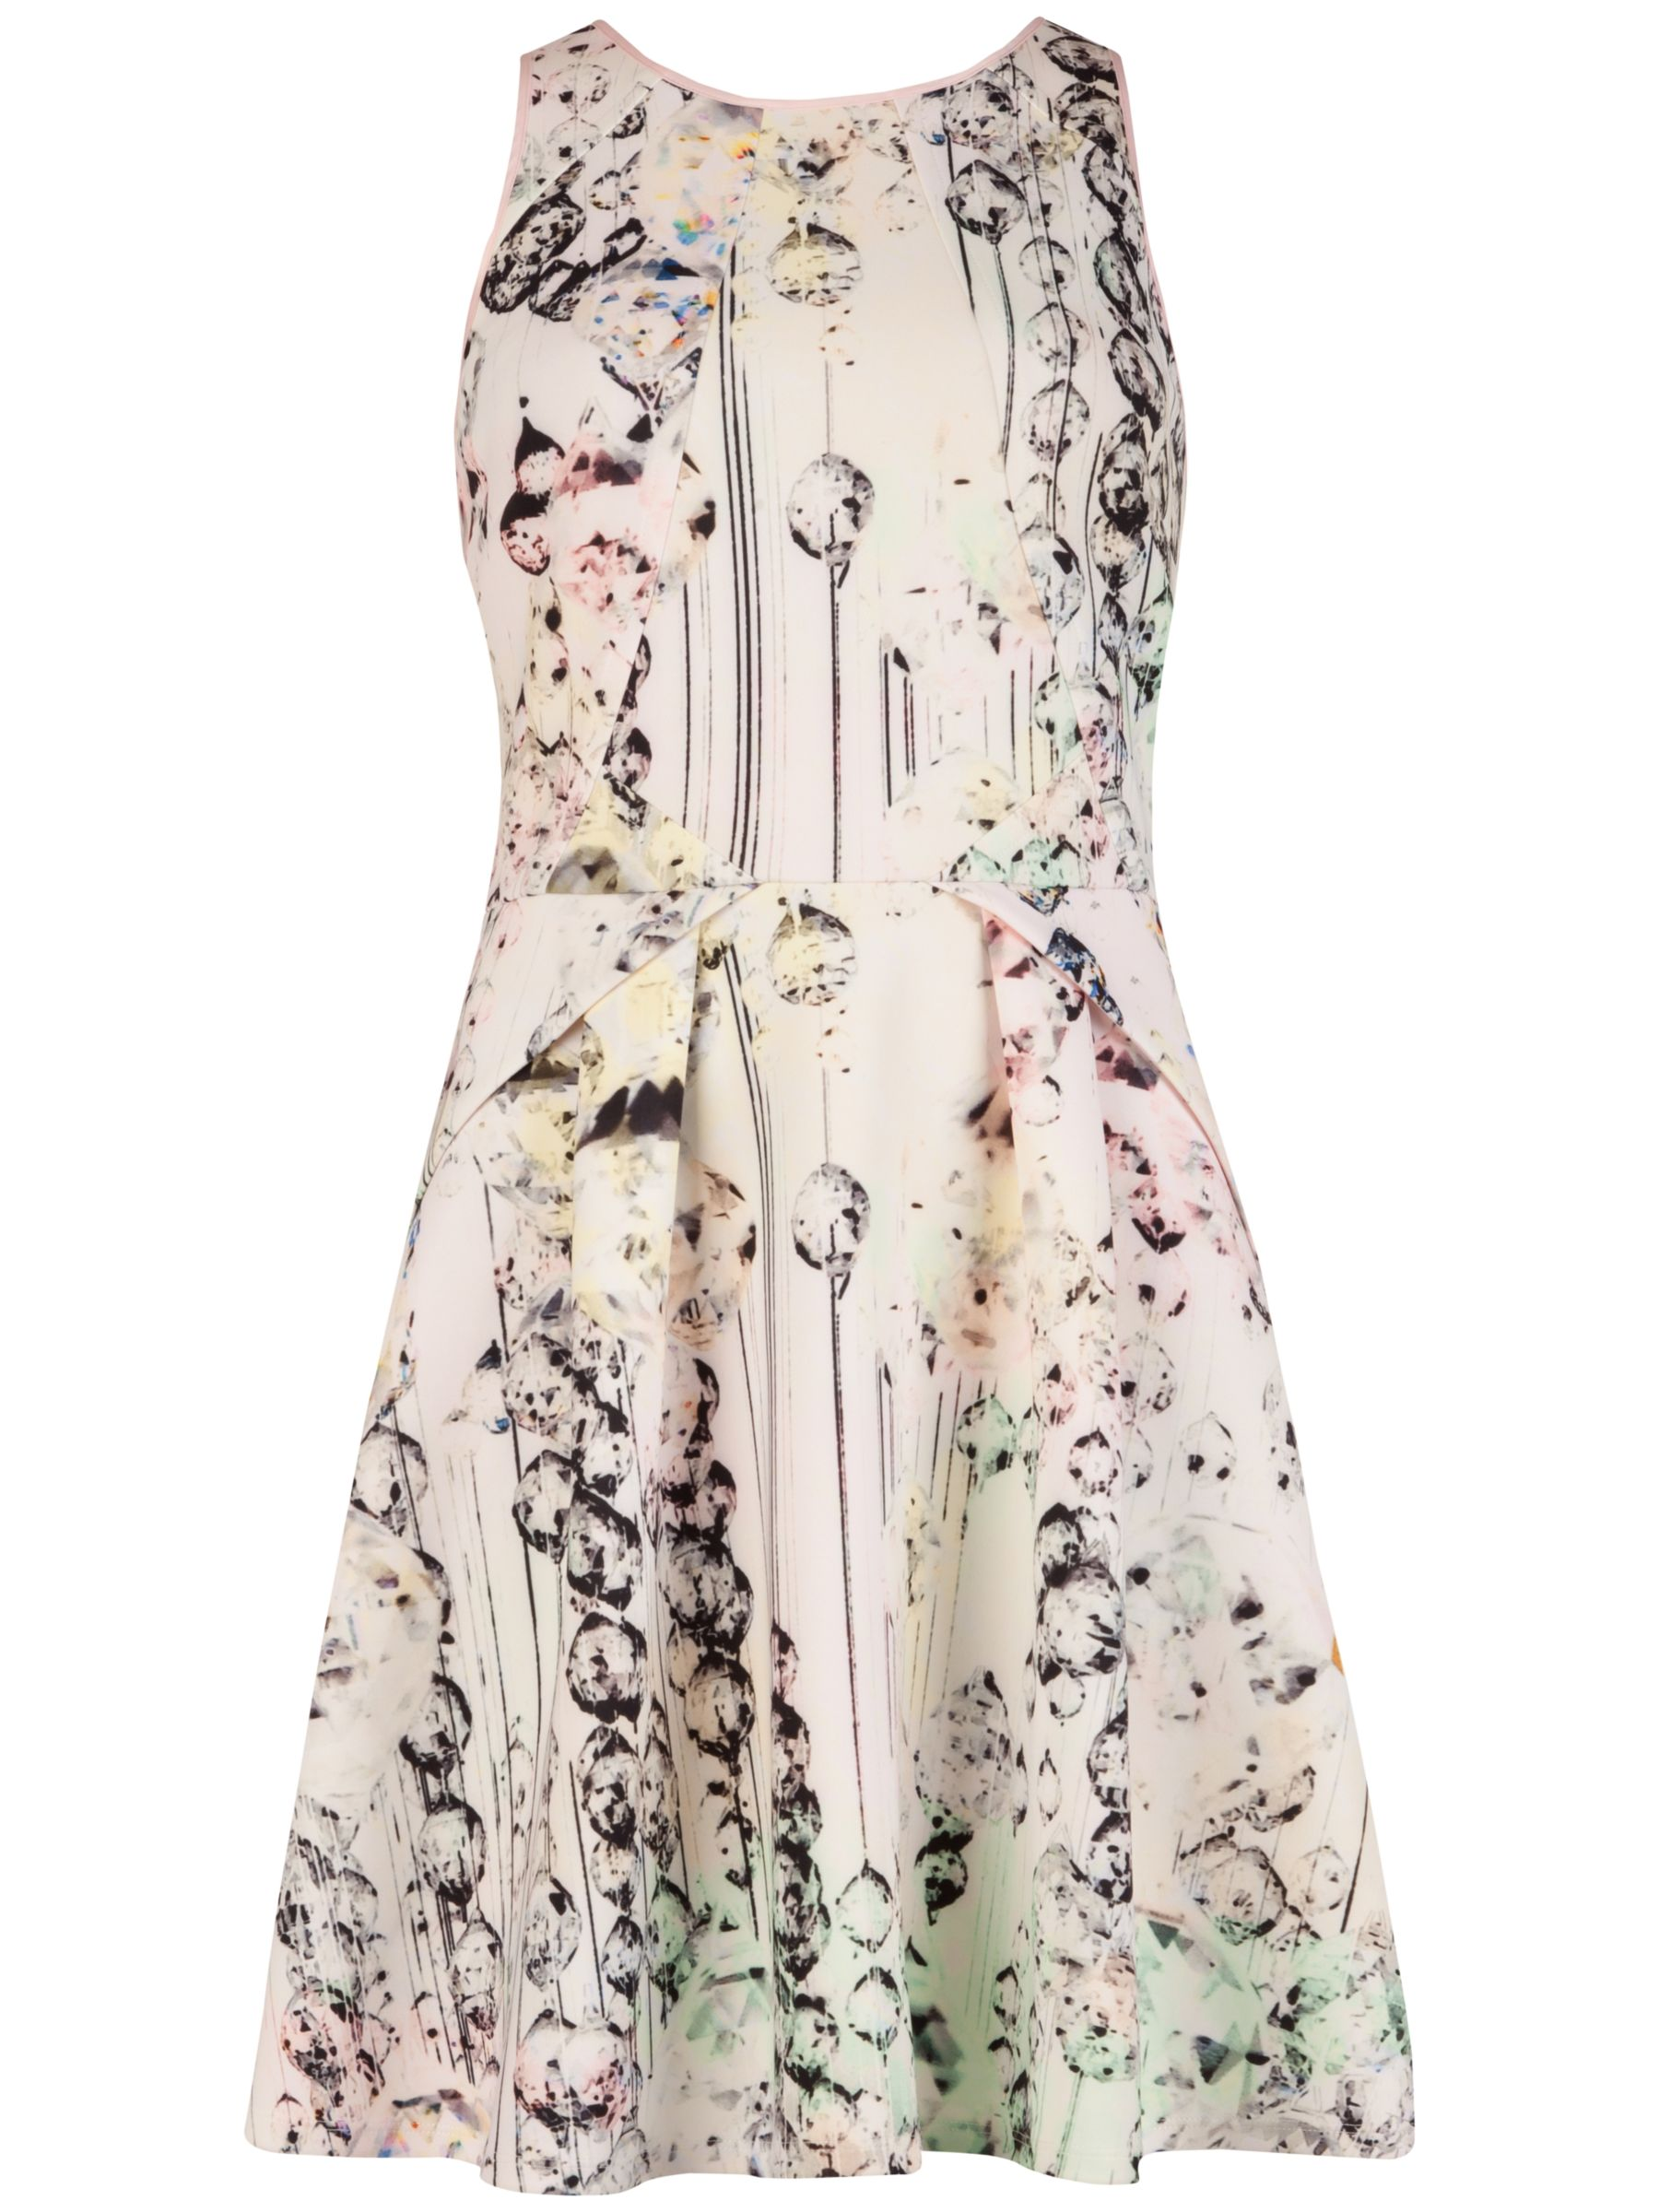 ted baker crystal droplets dress nude pink, ted, baker, crystal, droplets, dress, nude, pink, ted baker, 0|4|3|5|2|1, women, womens dresses, gifts, wedding, wedding clothing, female guests, inactive womenswear, outfit ideas, fashion magazine, womenswear, men, brands l-z, 1877567